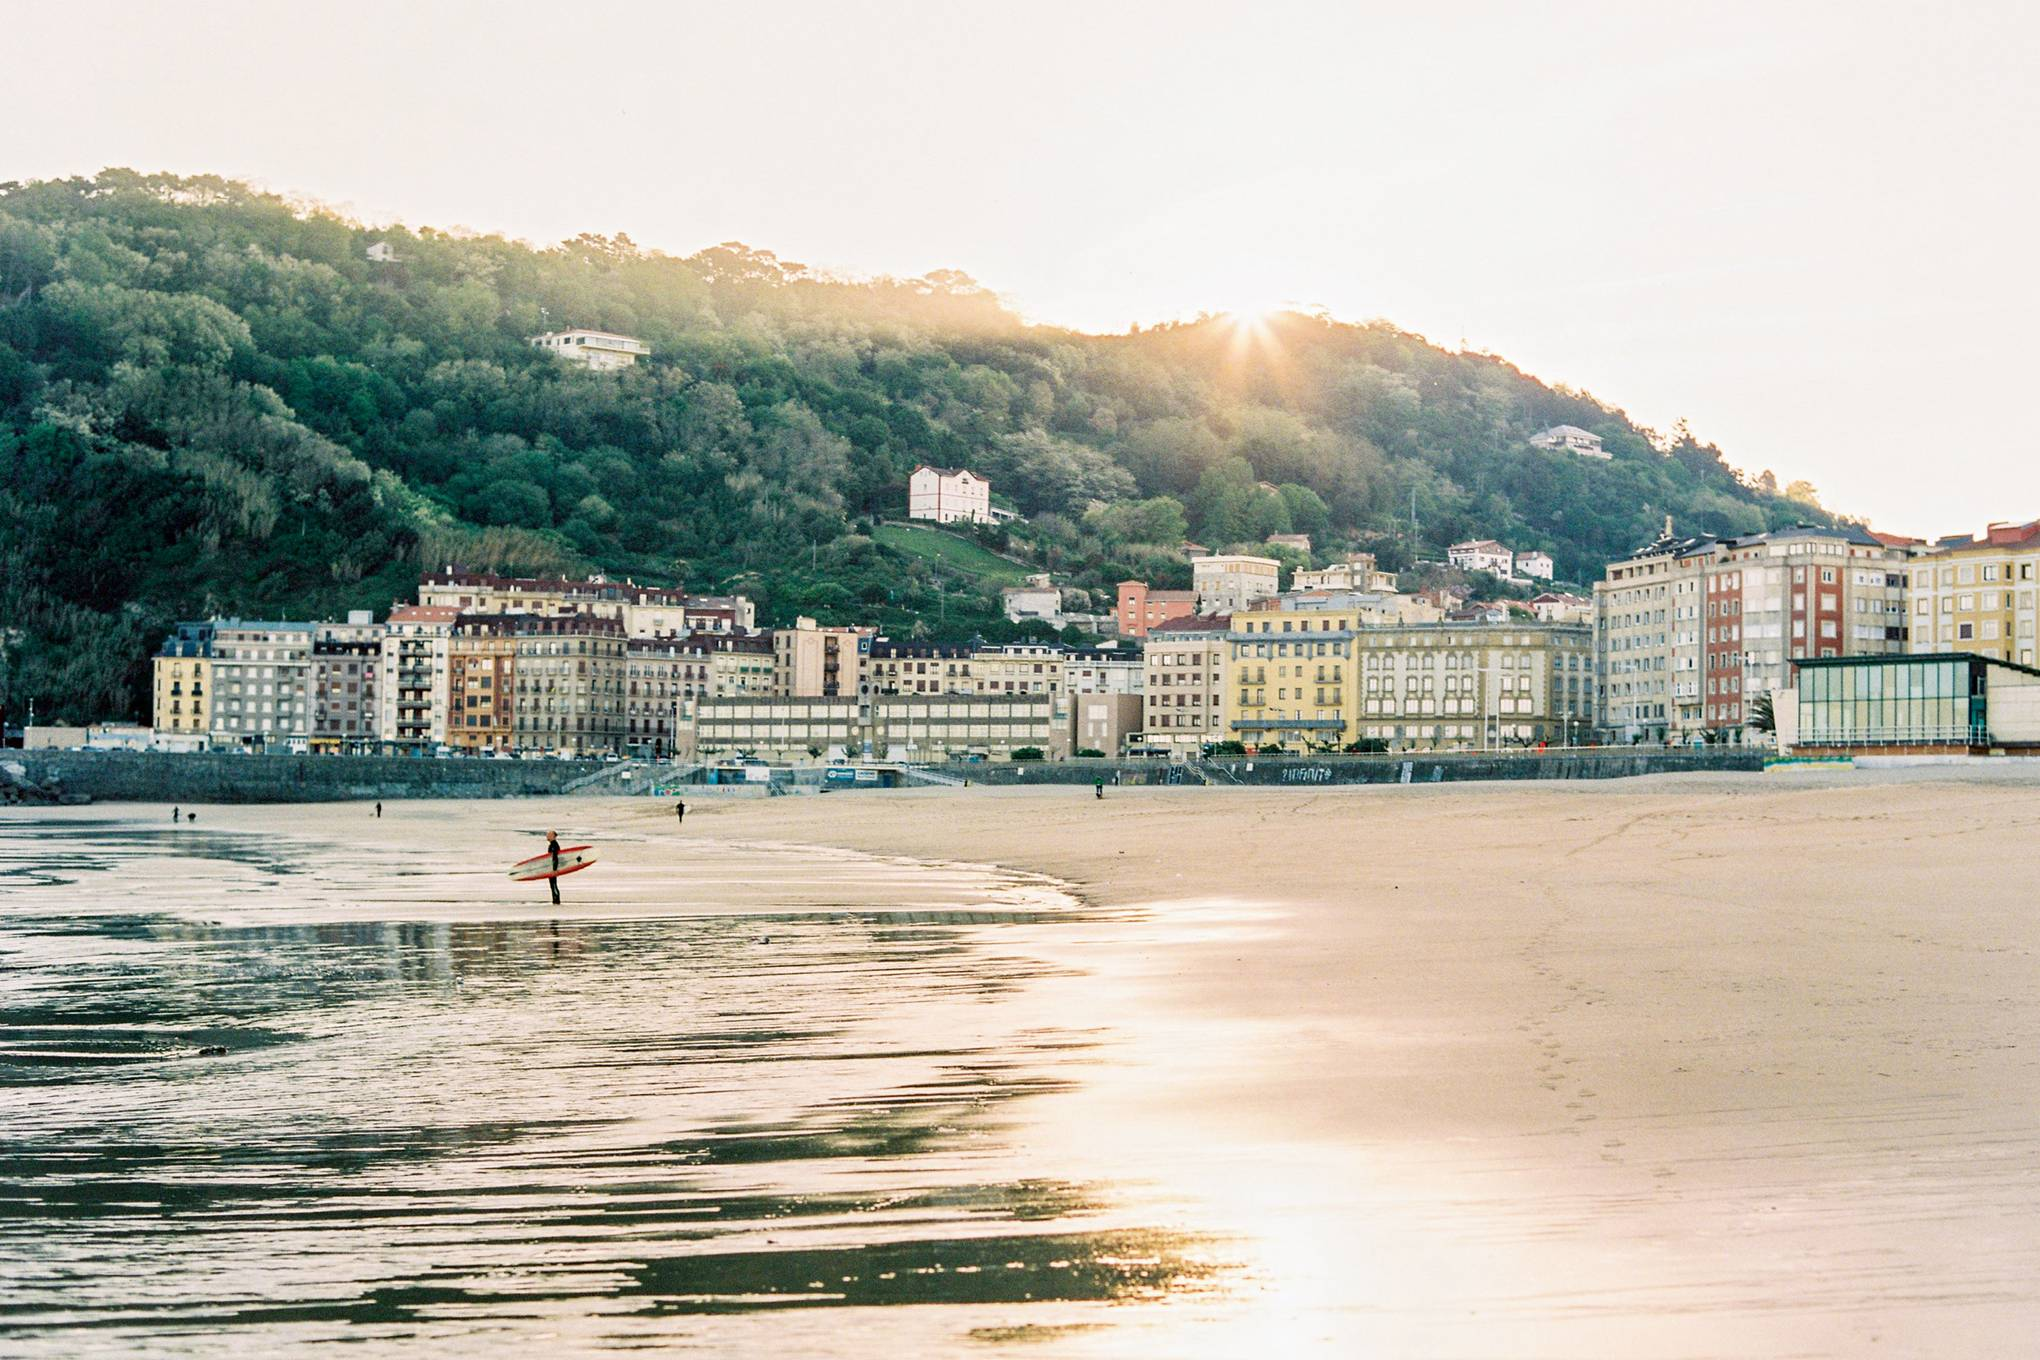 The Basque Country, Spain: 'I had not thought Spain could look like this'